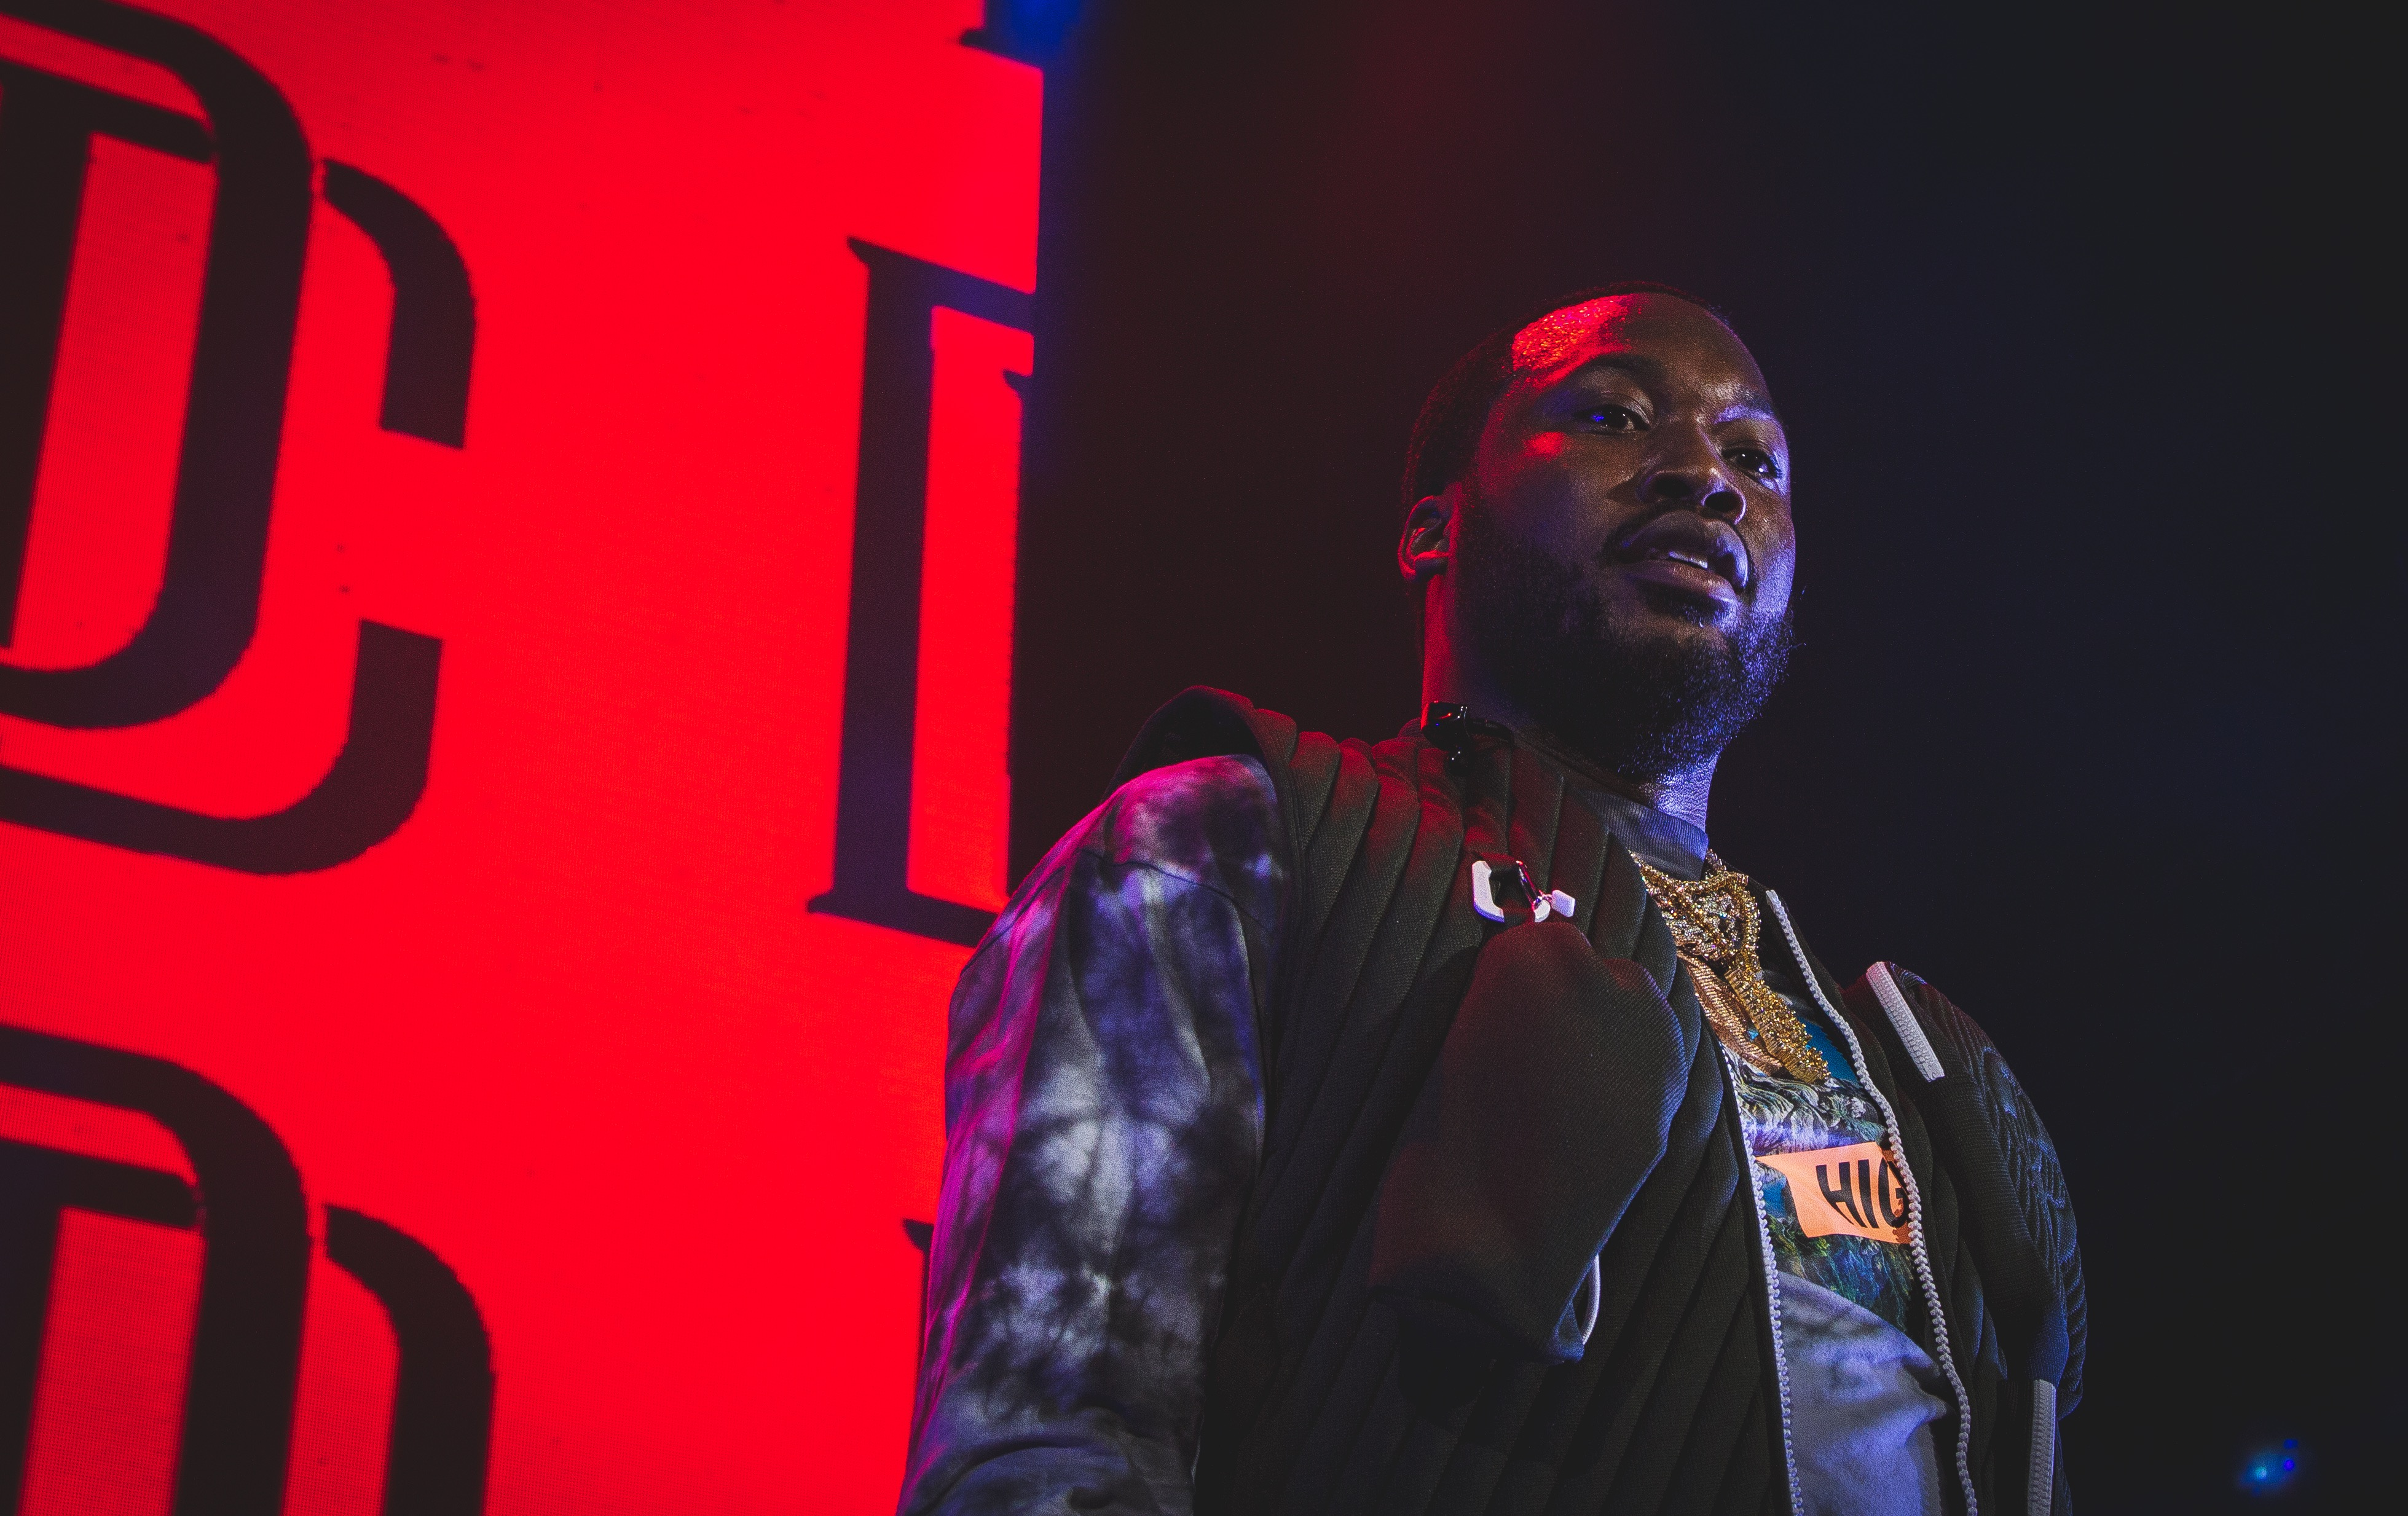 Meek Mill, Lil Baby, Lil Durk & 21 Savage Uniting For New Music Platform